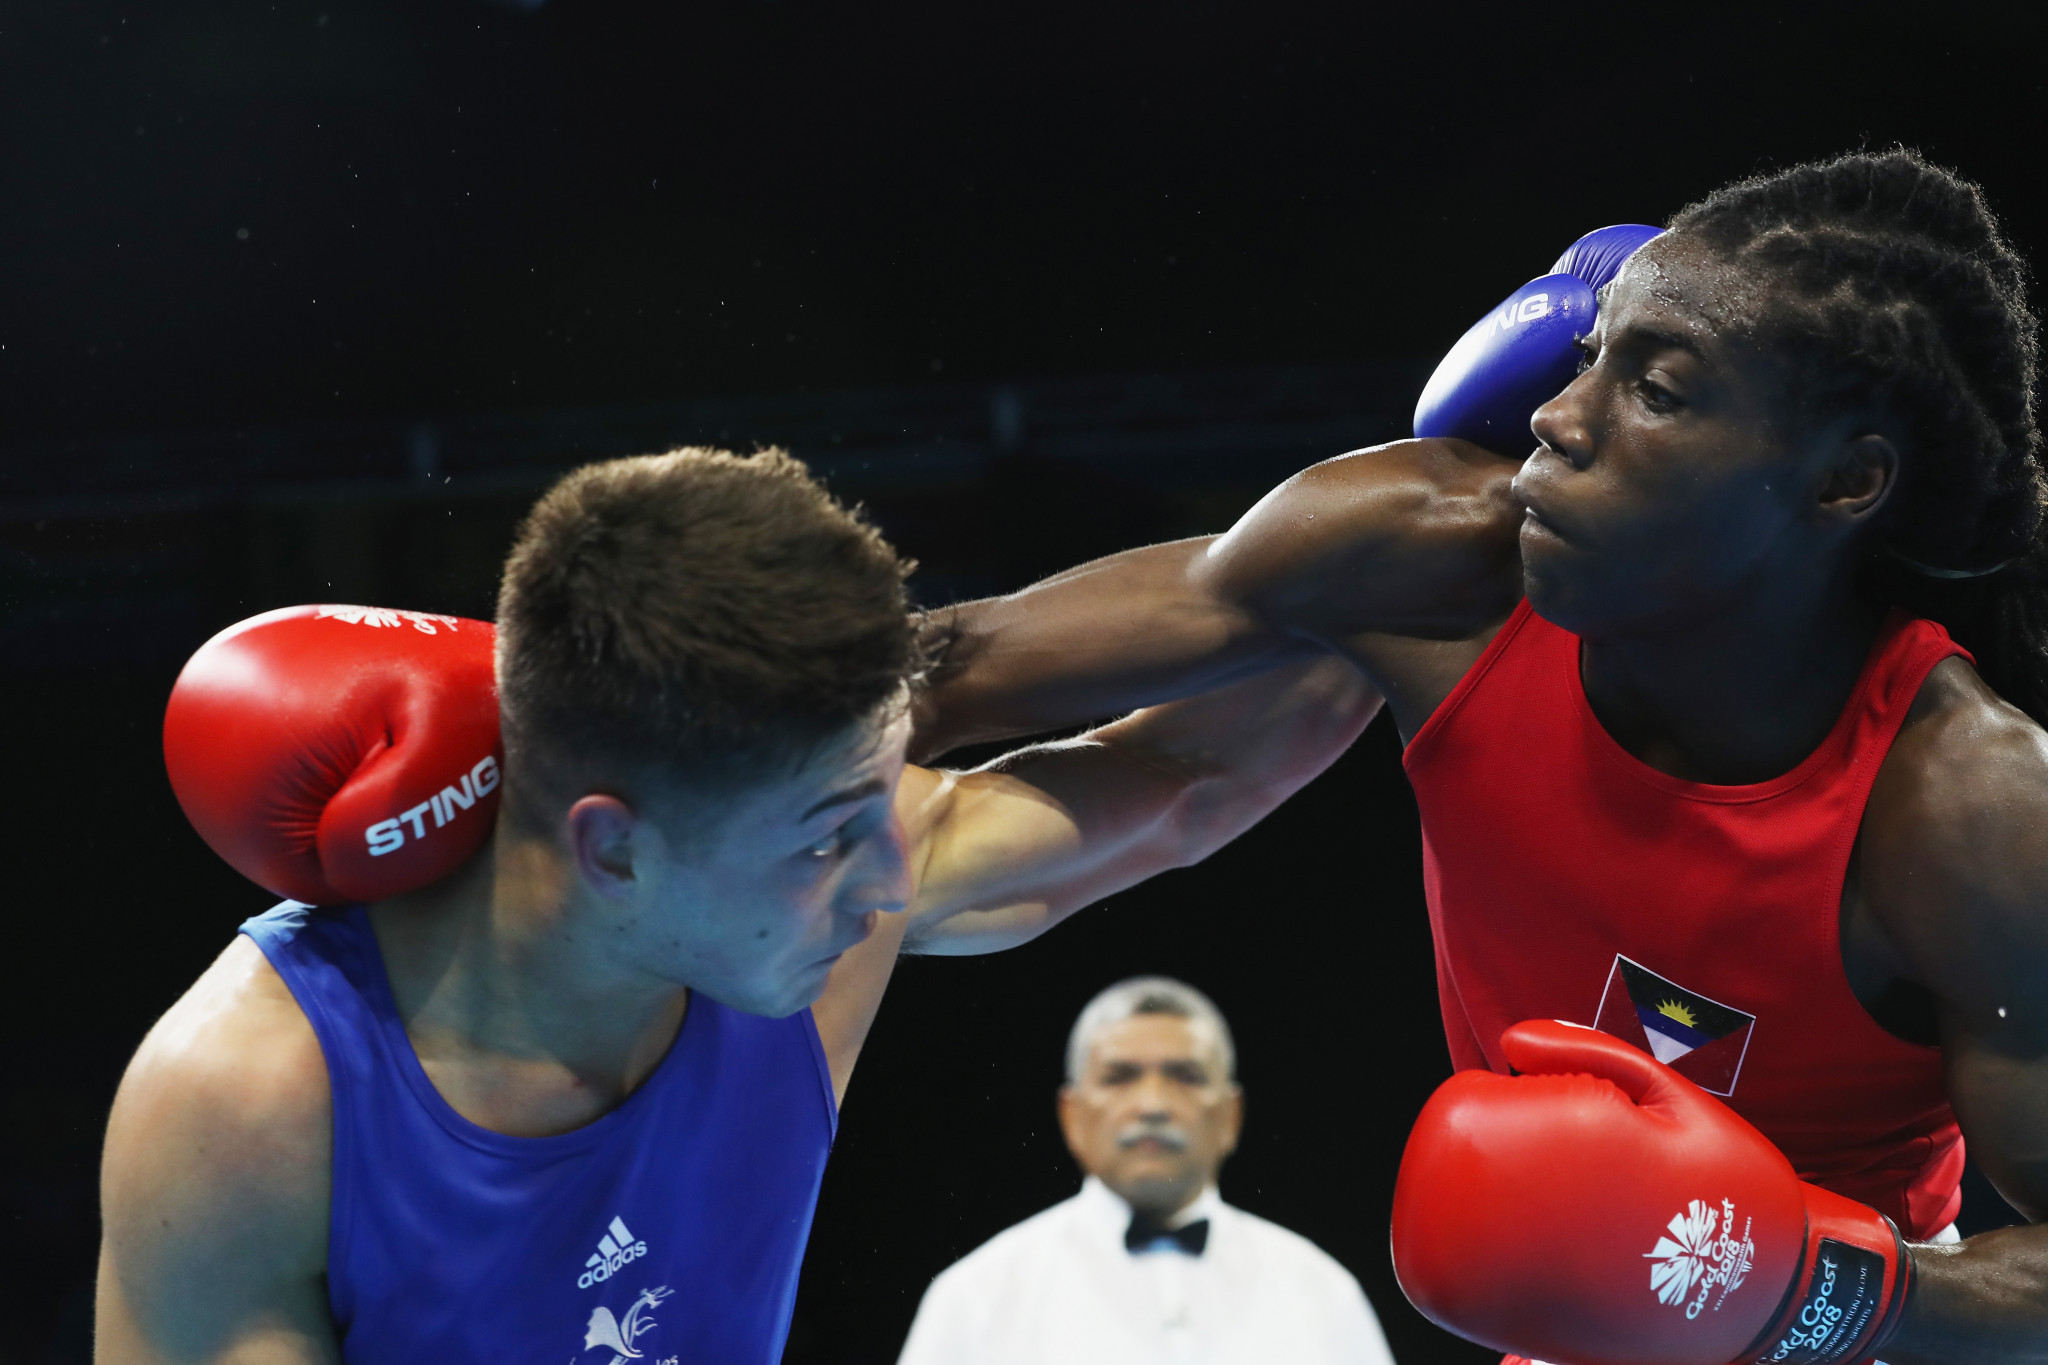 The success of Alston Ryan, right, could improve development of boxing, says ABOA President Paul Chet Greene ©Getty Images